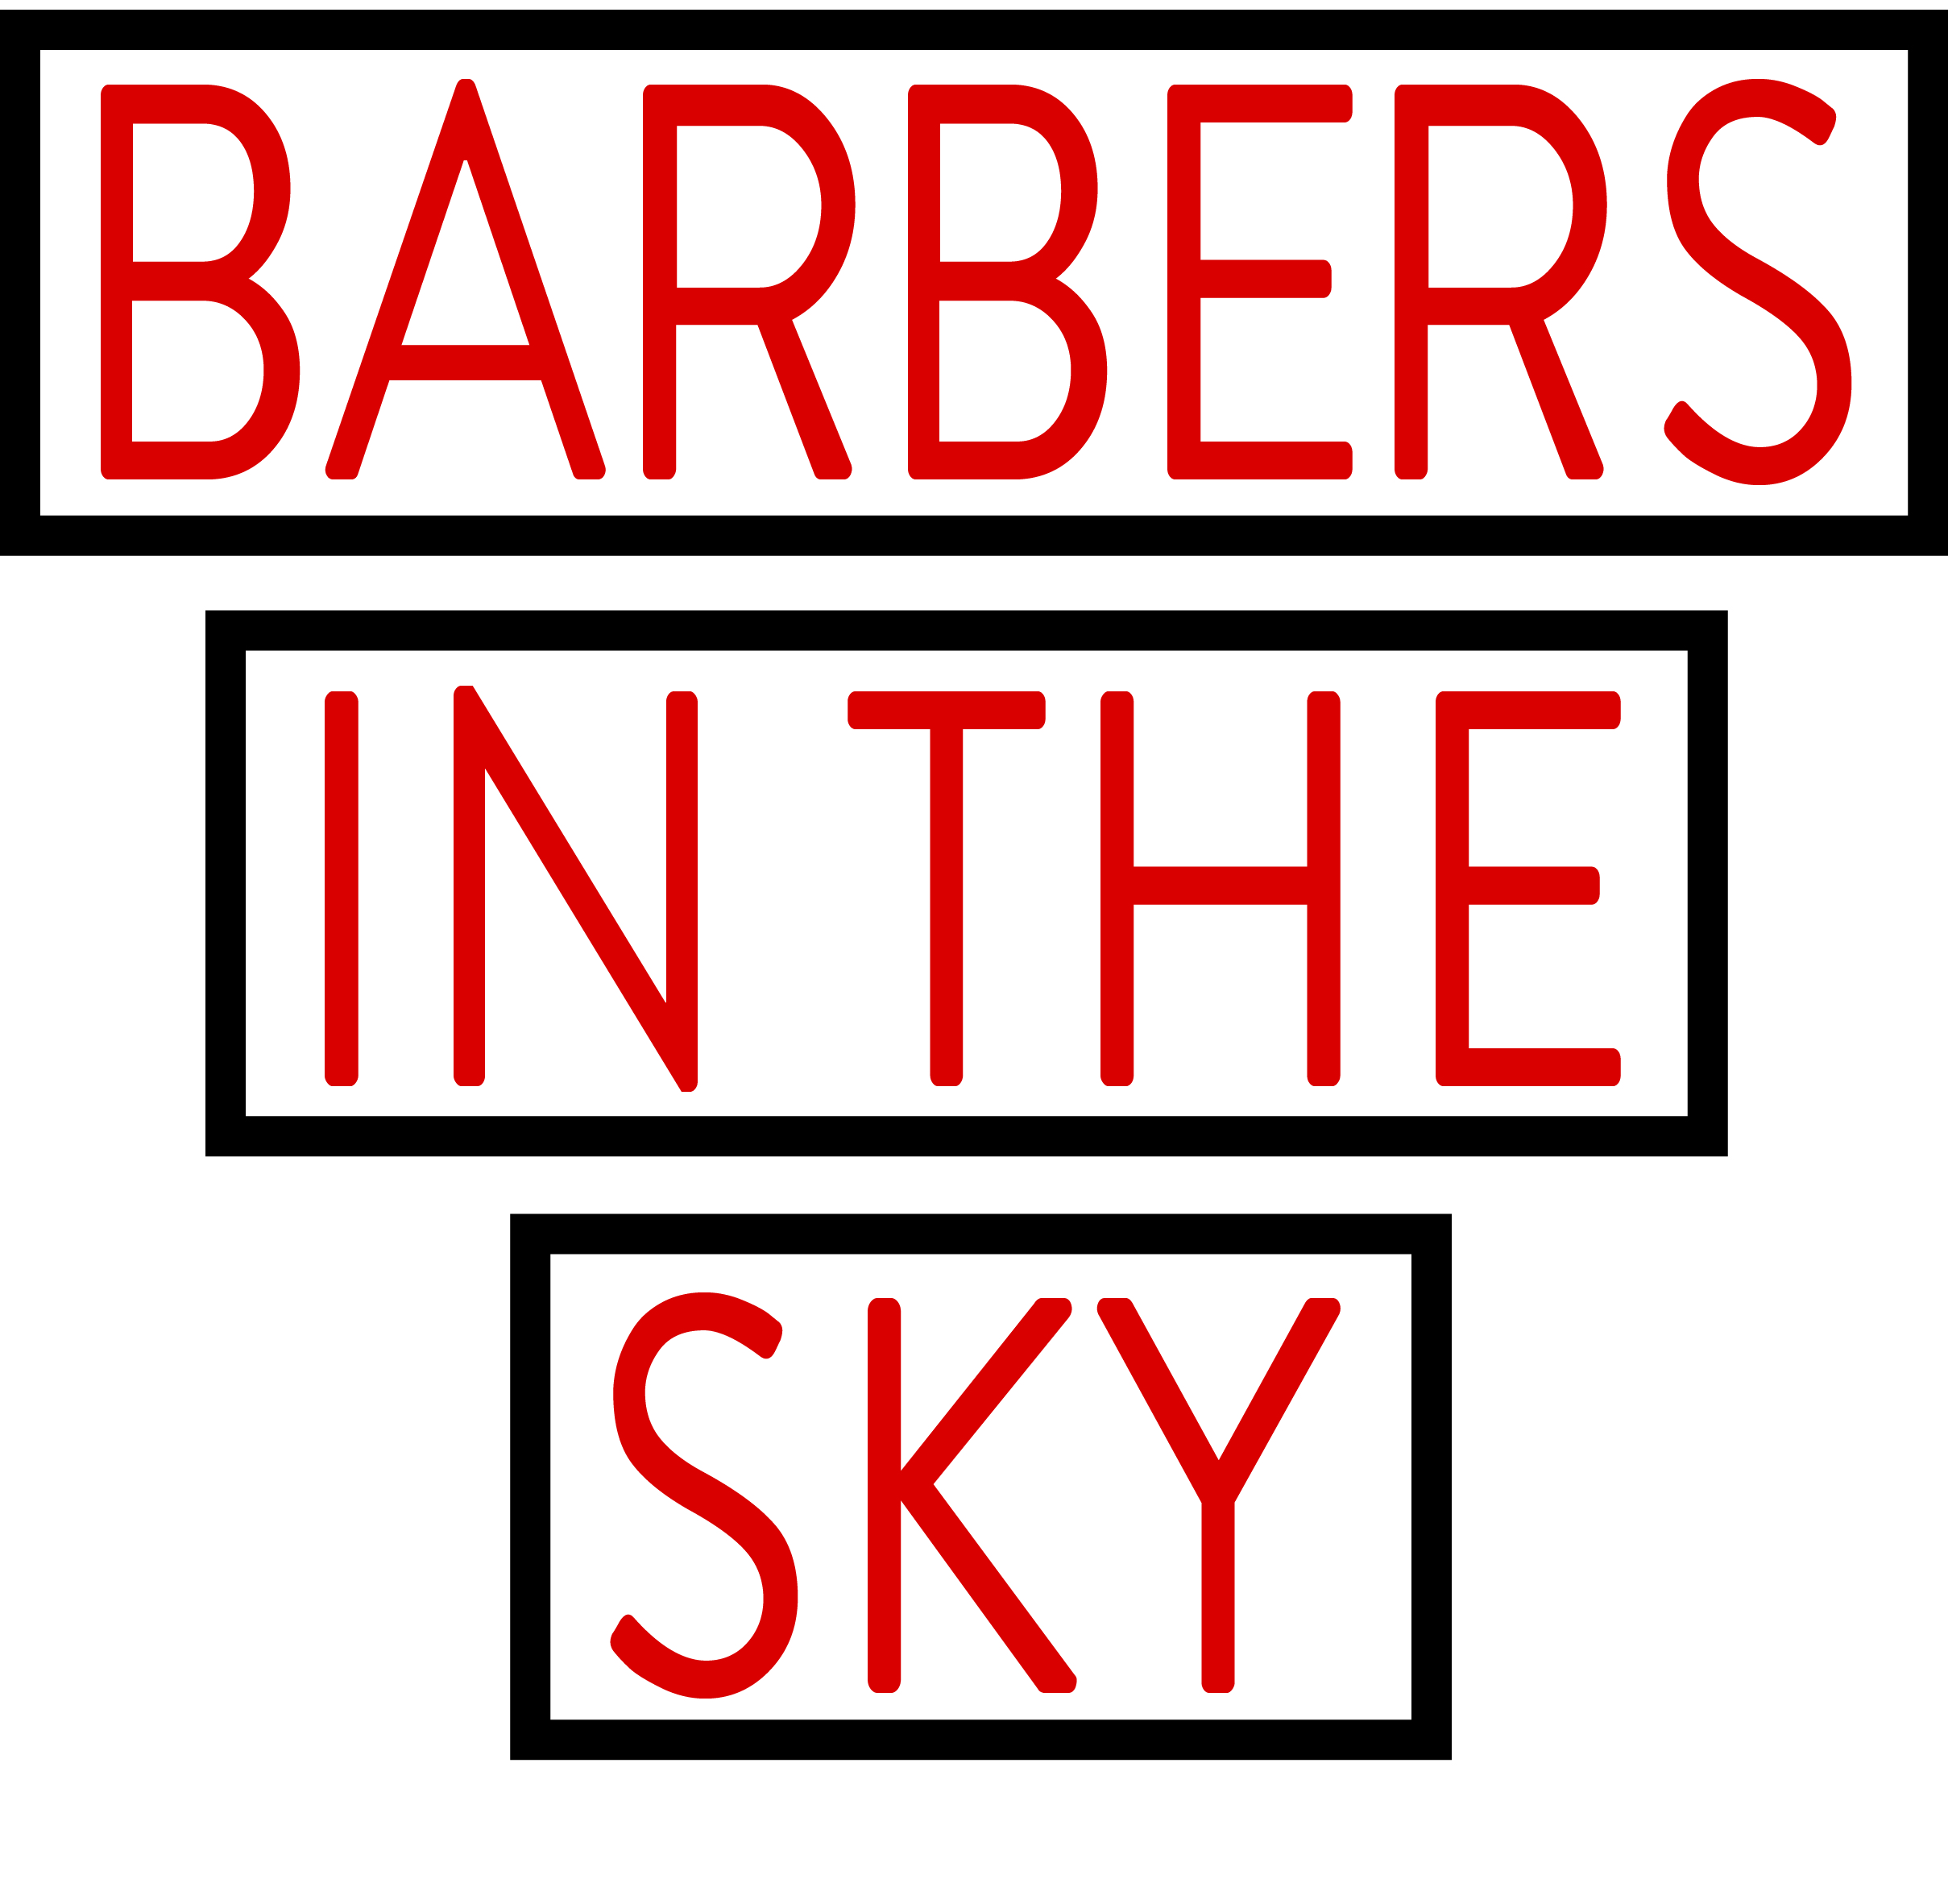 Barbers In The Sky